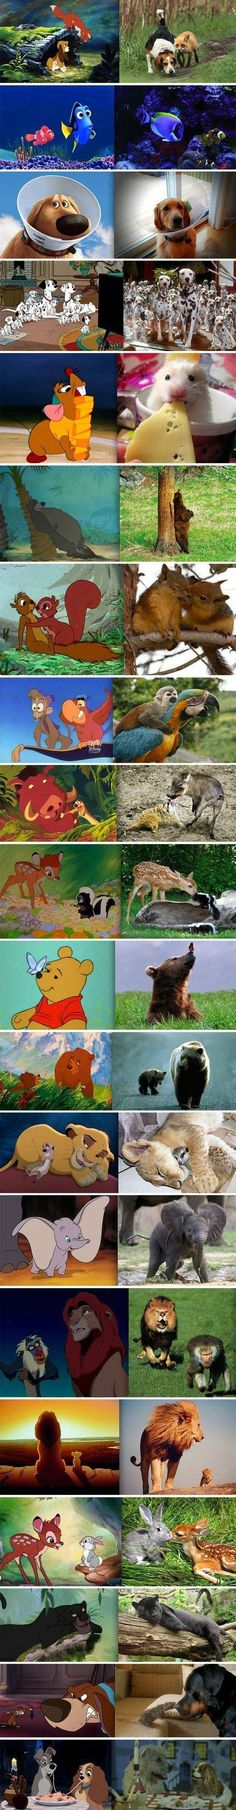 Disney in real life - Win Picture   Webfail - Fail Pictures and Fail Videos